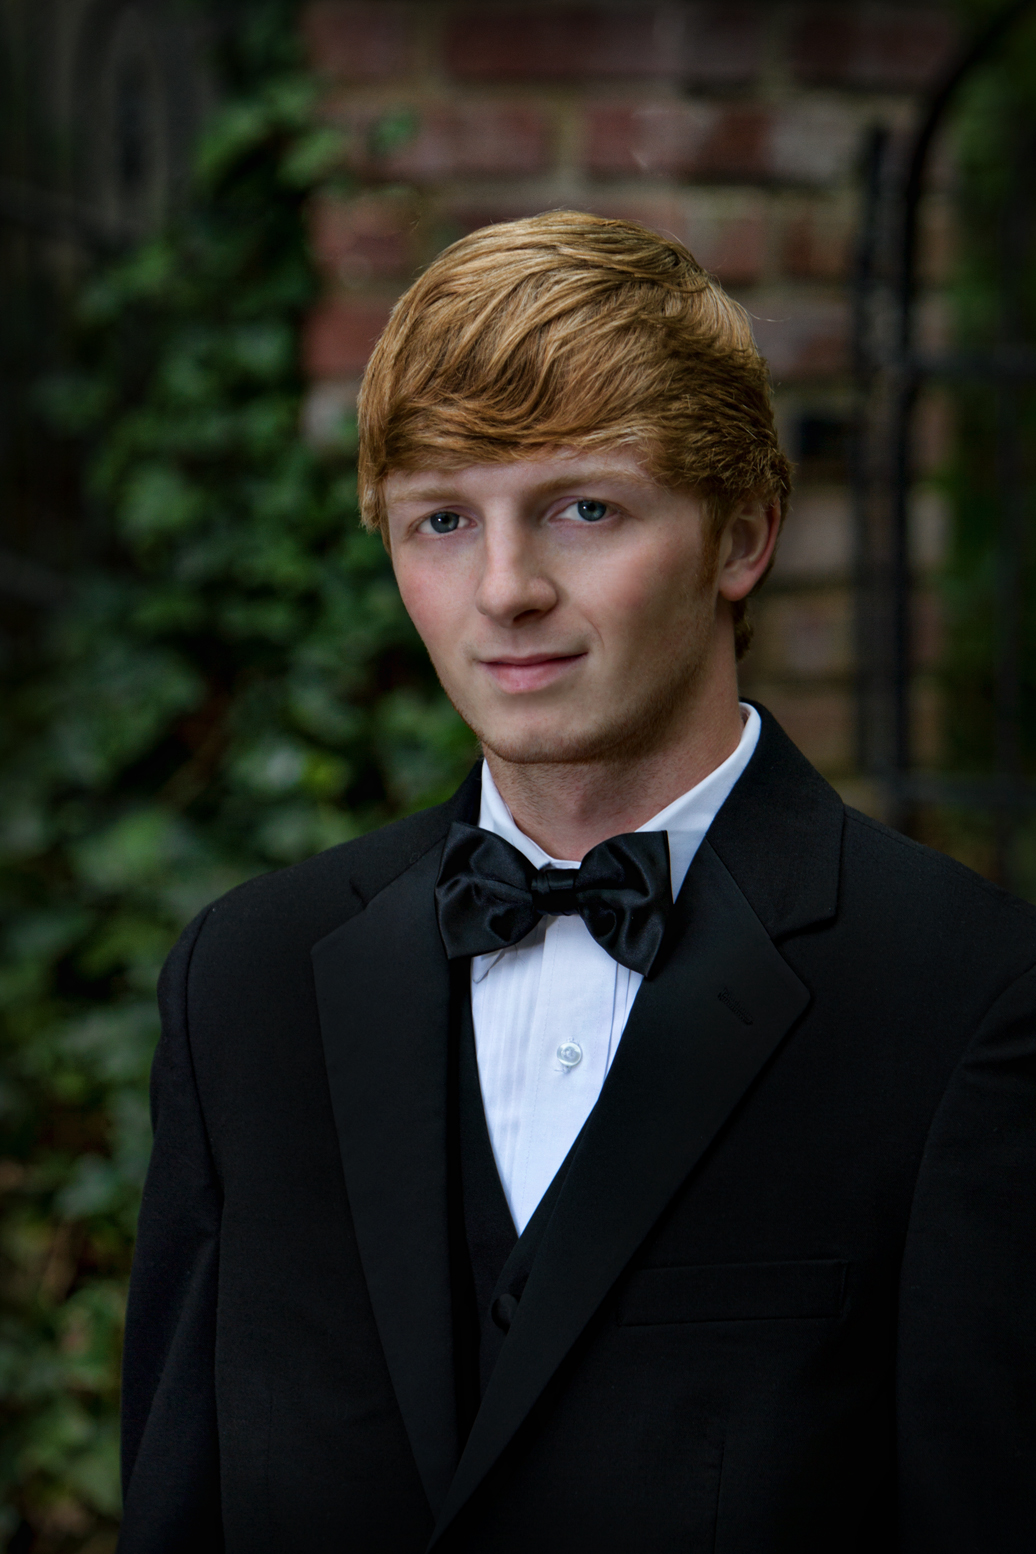 Here is Aaron, a DHS Senior, with a tux, casual and with his truck.